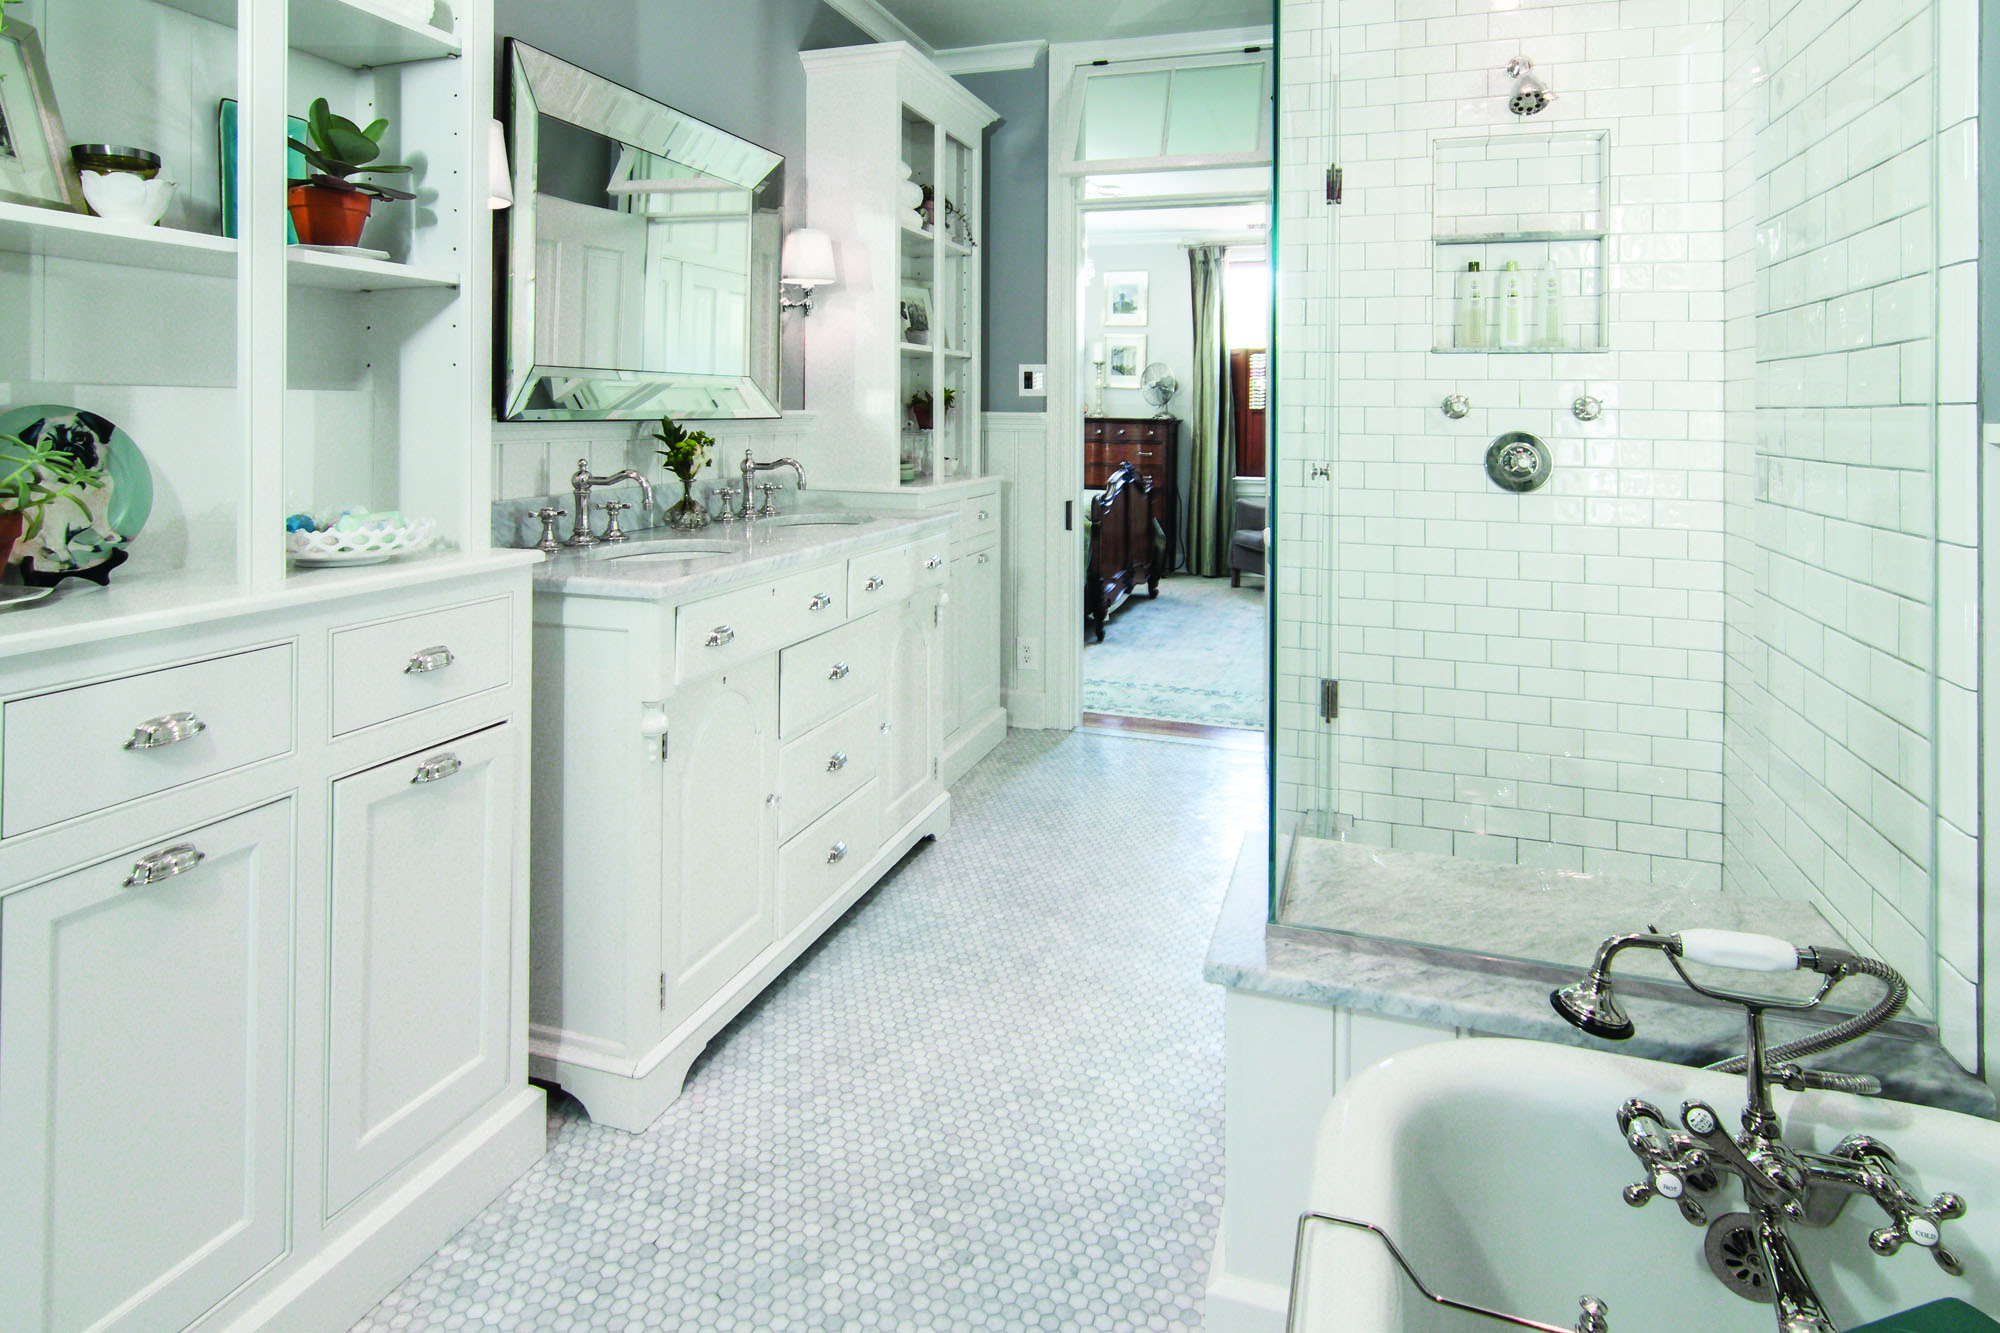 Alex  designed and built the storage cabinets on either side of the vanity, right down to pull-out laundry bins.